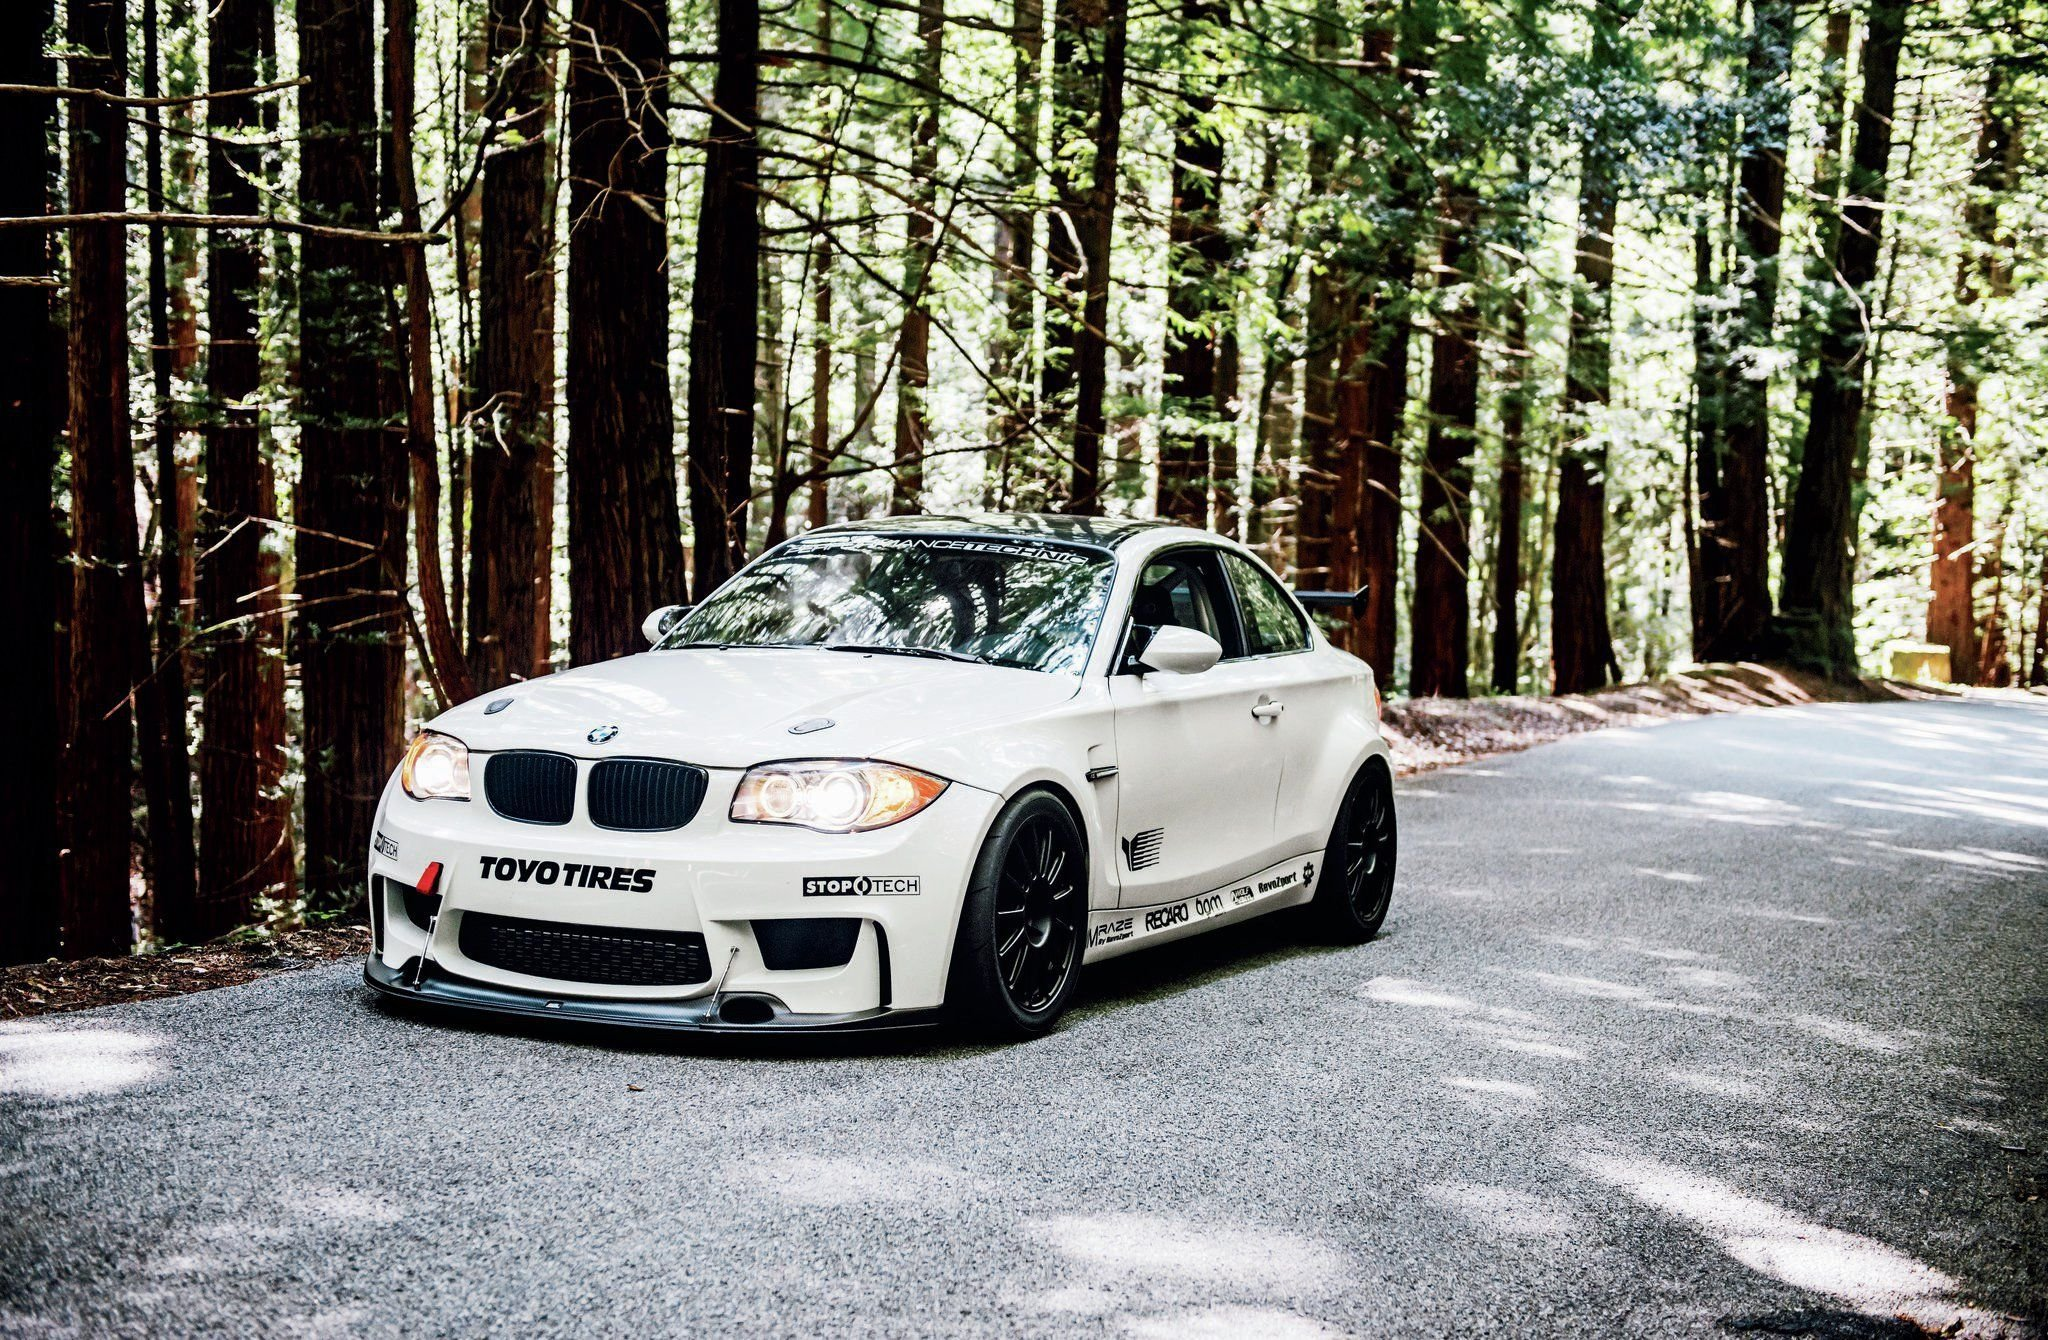 Group B Rally Cars Wallpapers Bmw 135i Wallpaper 60 Wallpapers Adorable Wallpapers